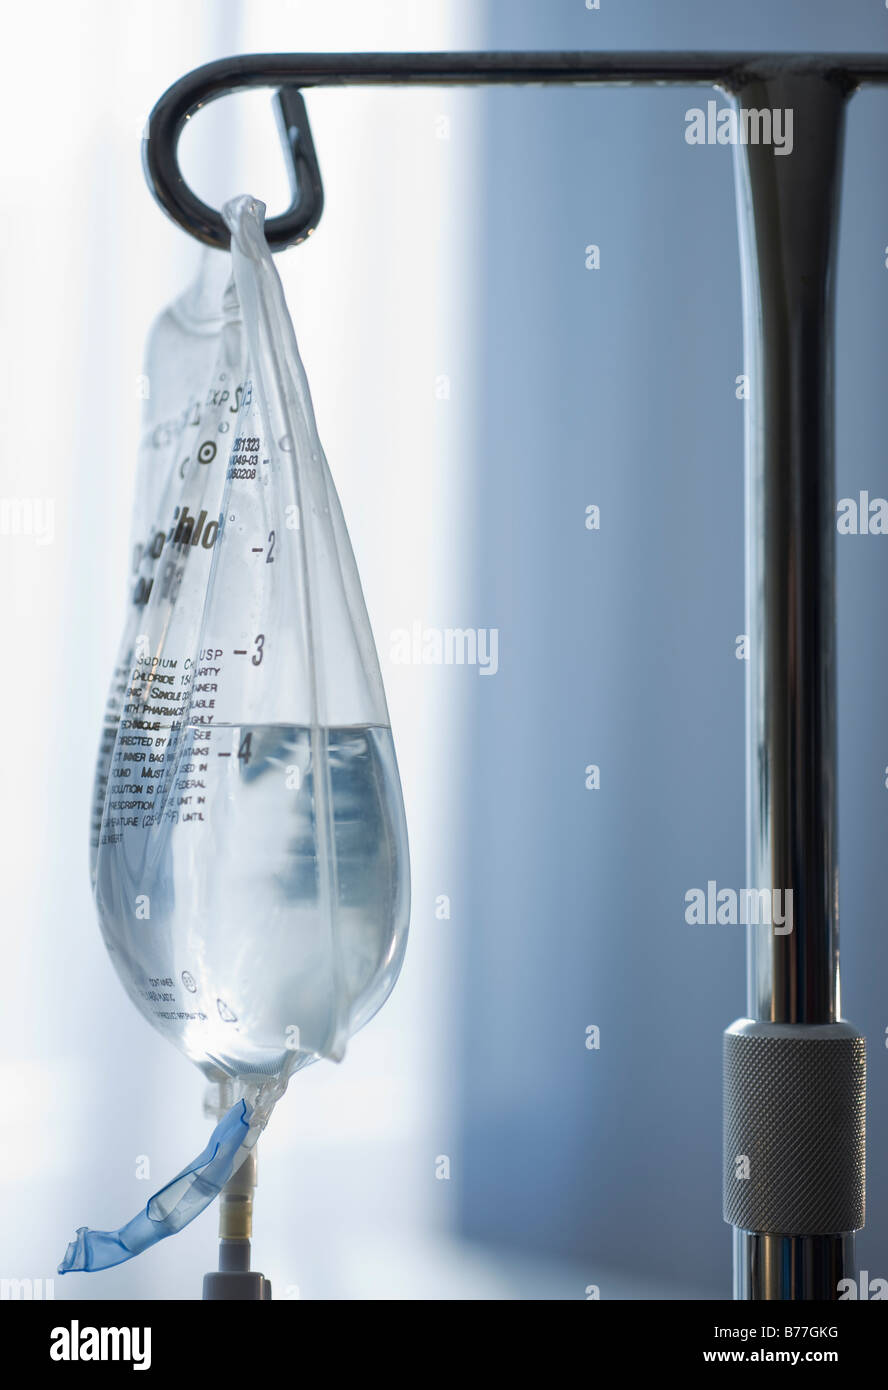 Close up of Intravenous drip - Stock Image